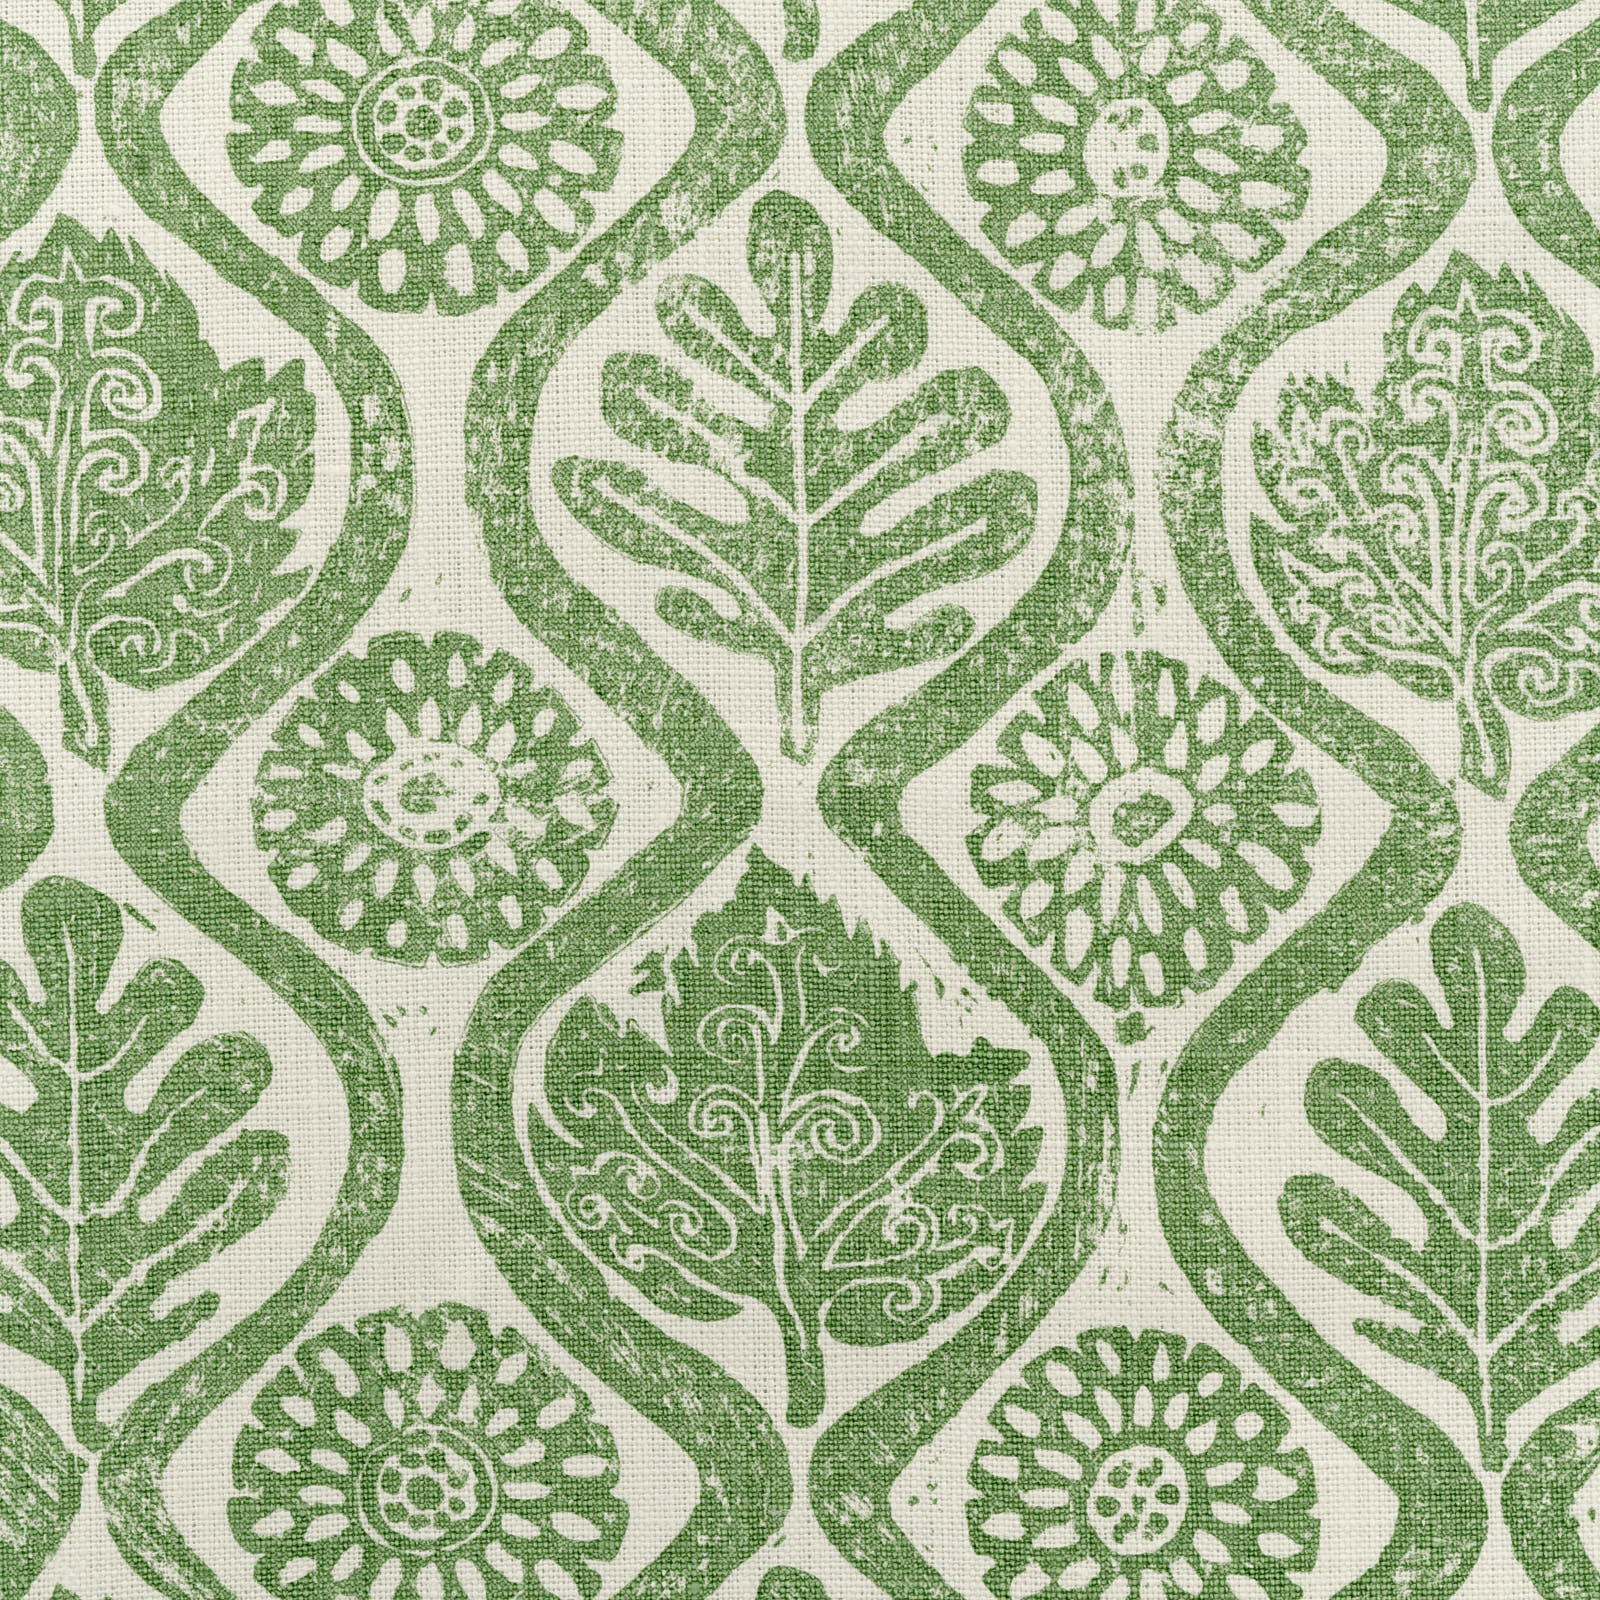 <p><strong>OAKLEAVES</strong>forest 6200-09<a href=/the-peggy-angus-collection/oakleaves-forest-6200-09>More →</a></p>